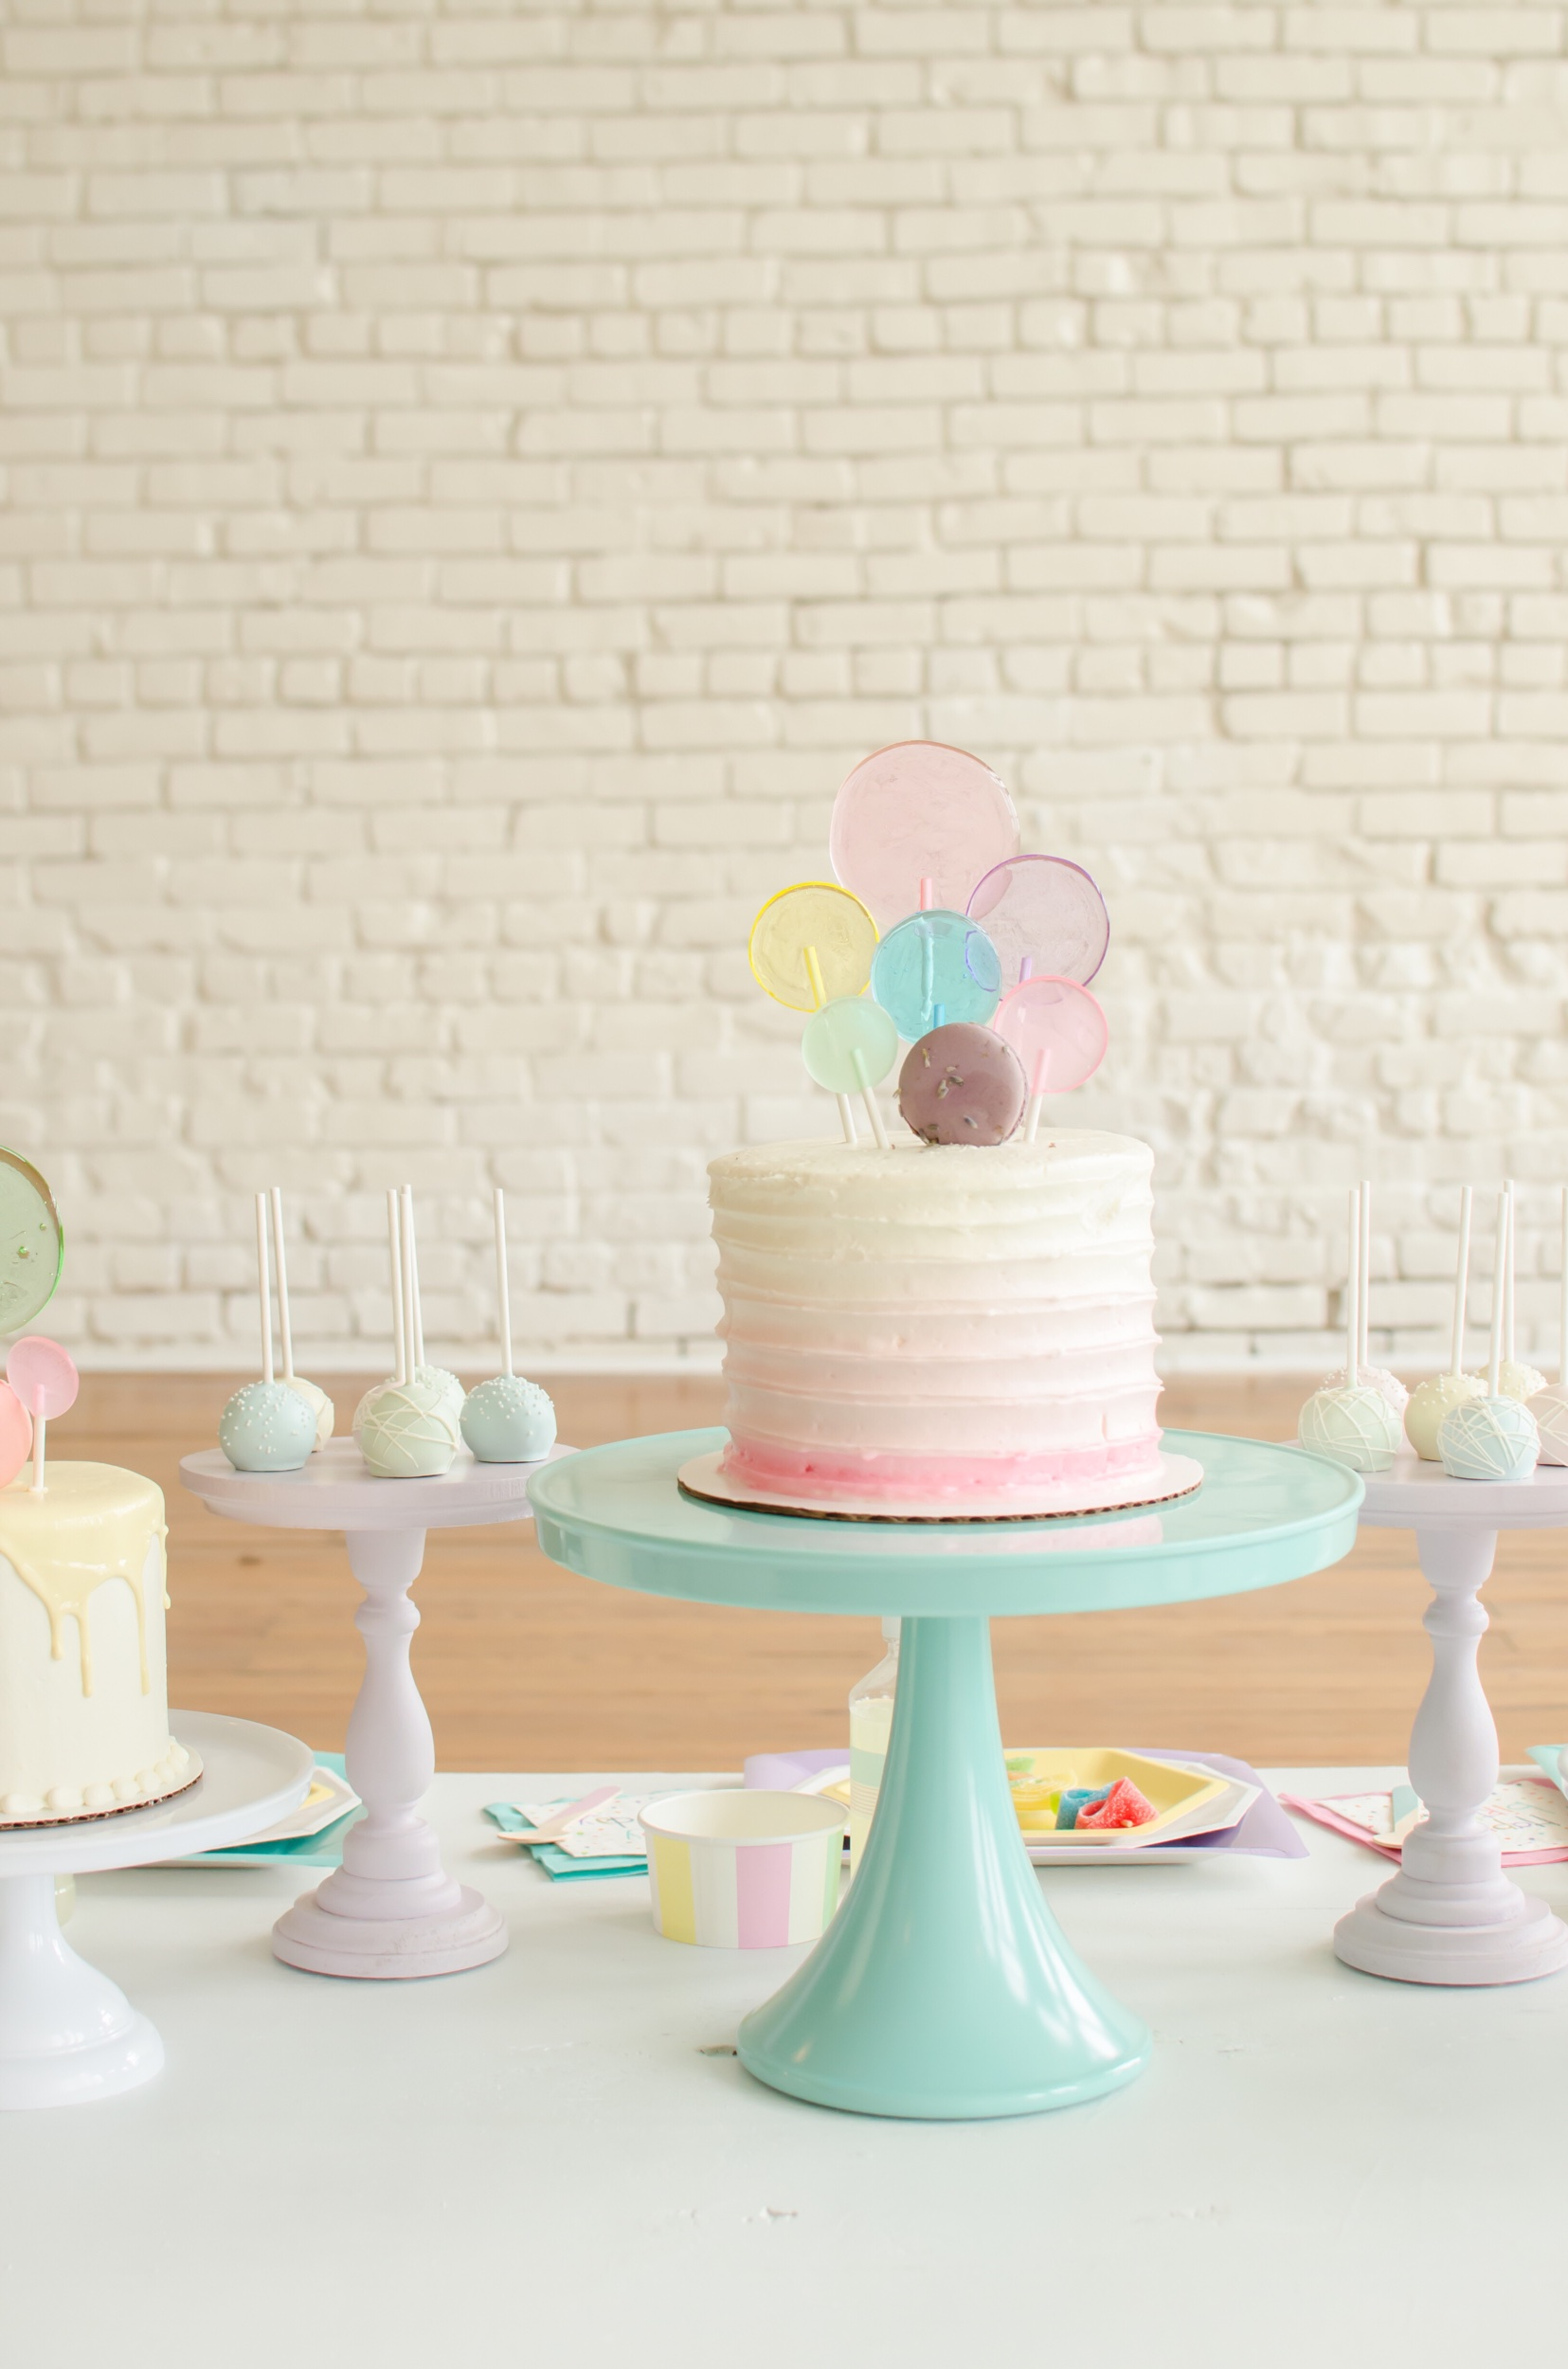 Cake ideas from Mint Event Design